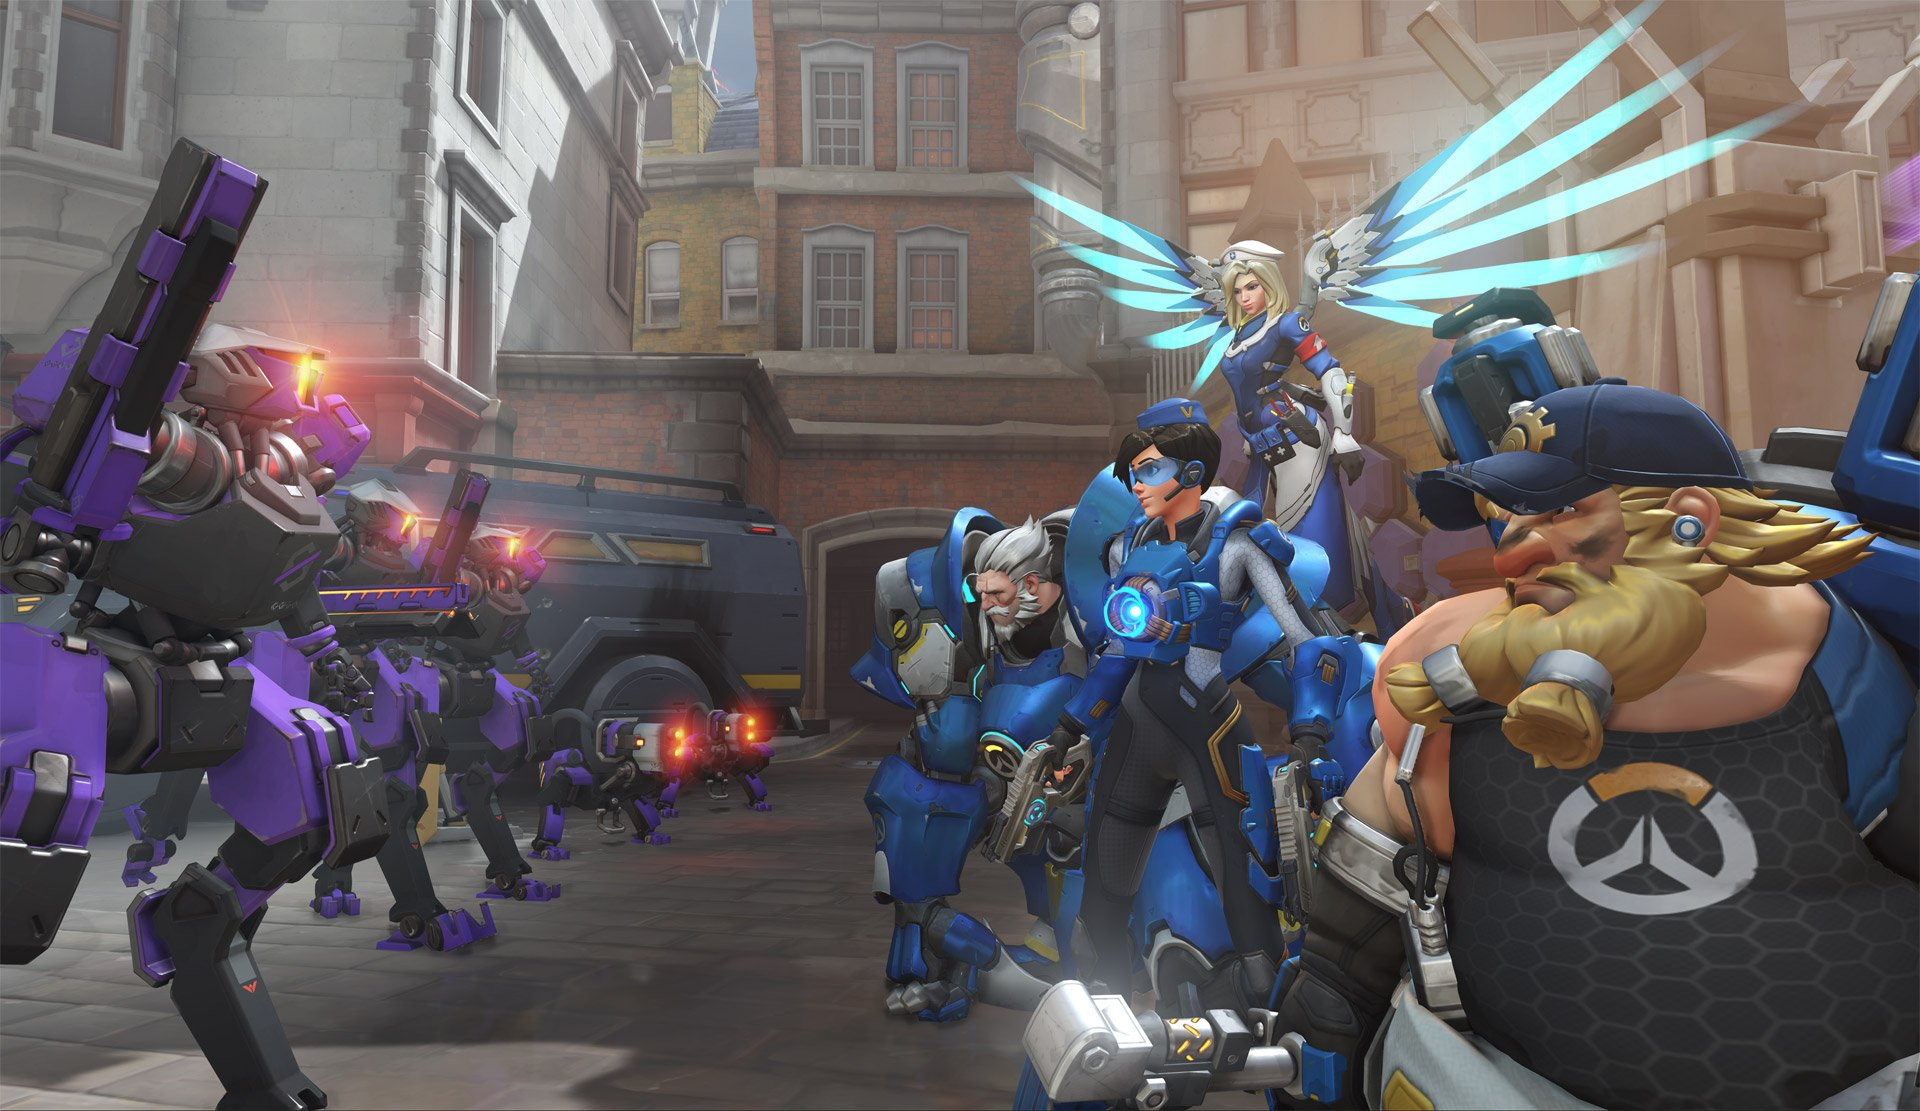 The lead writer of Overwatch has left Blizzard screenshot